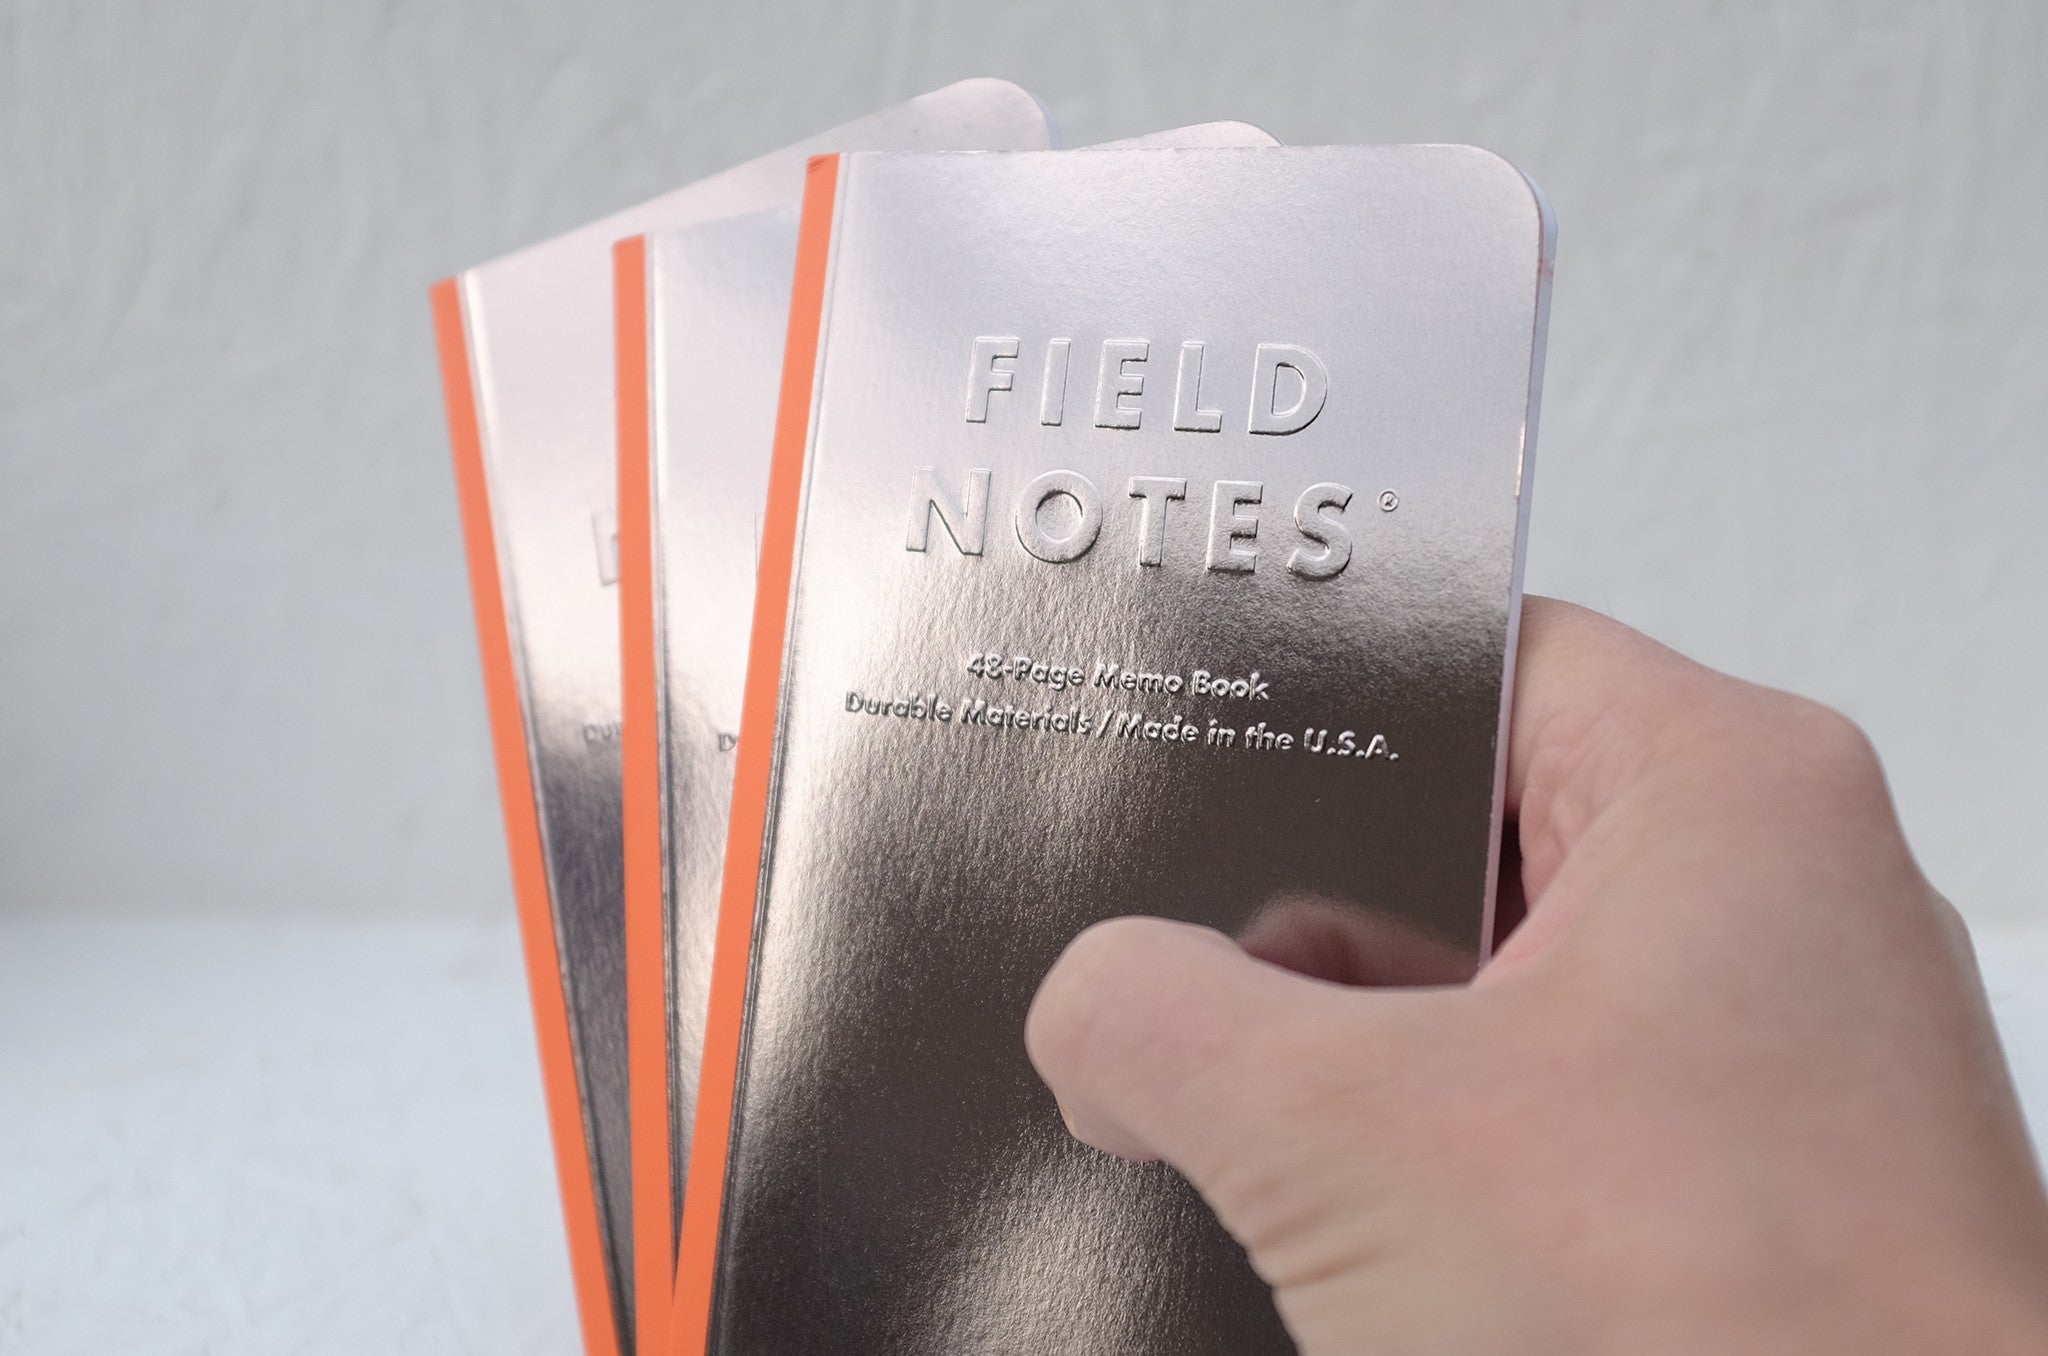 Field Notes notebooks - 'Black Ice' 3-pack